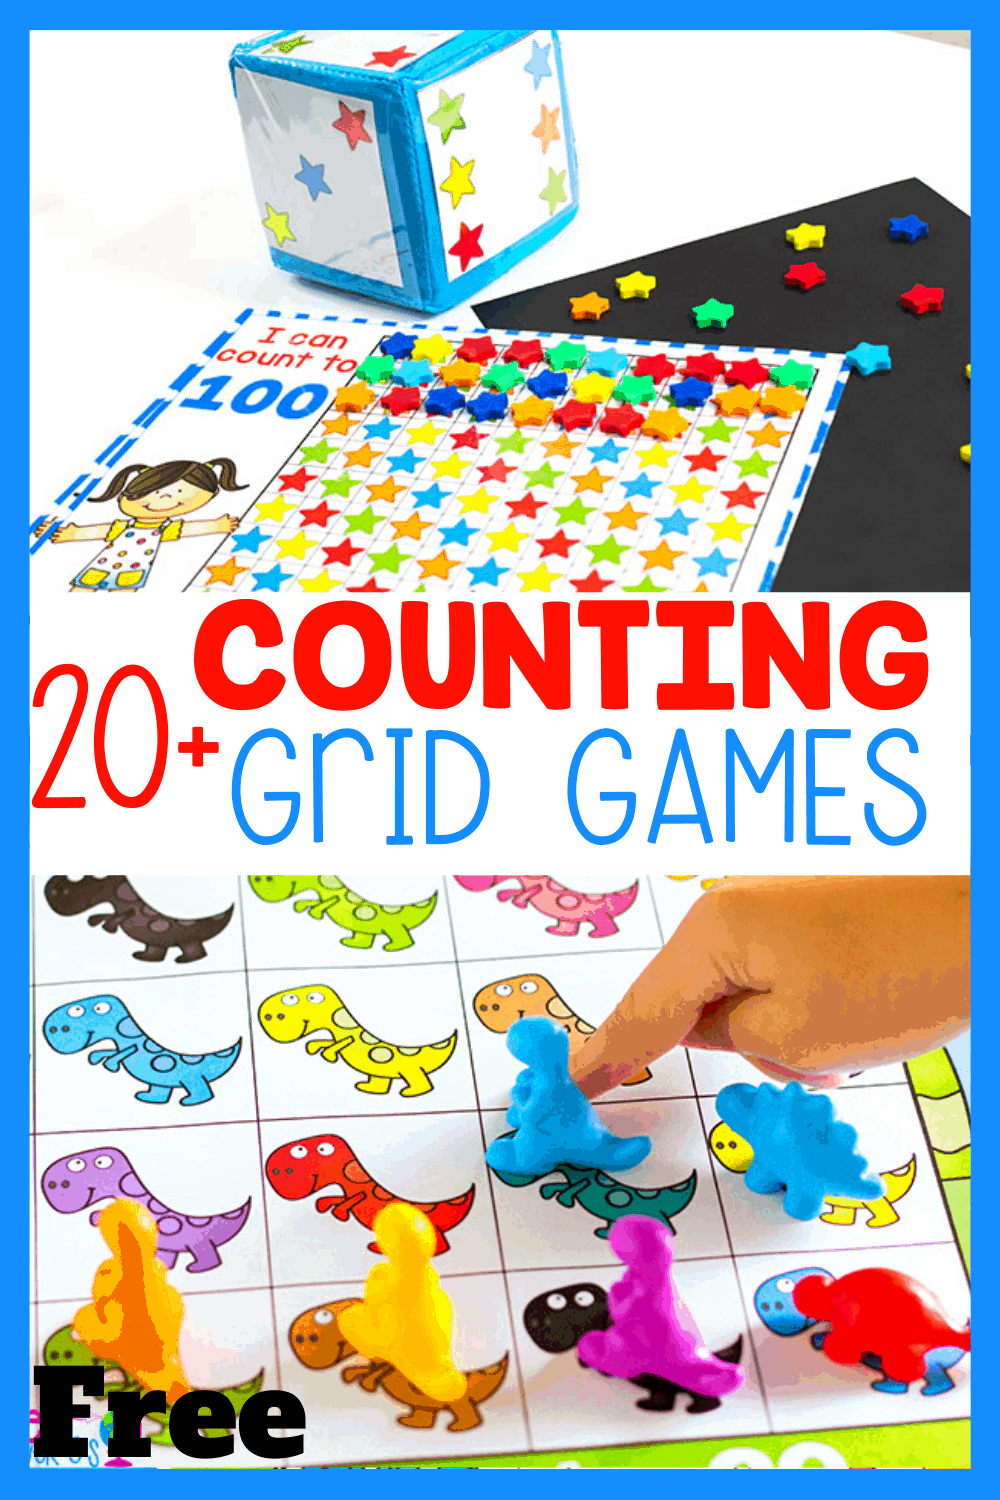 20+ free themed counting grid math games for preschool, pre-k, kindergarten math centers or learning at home. Practice counting, addition and subtraction with these no-prep free printables.